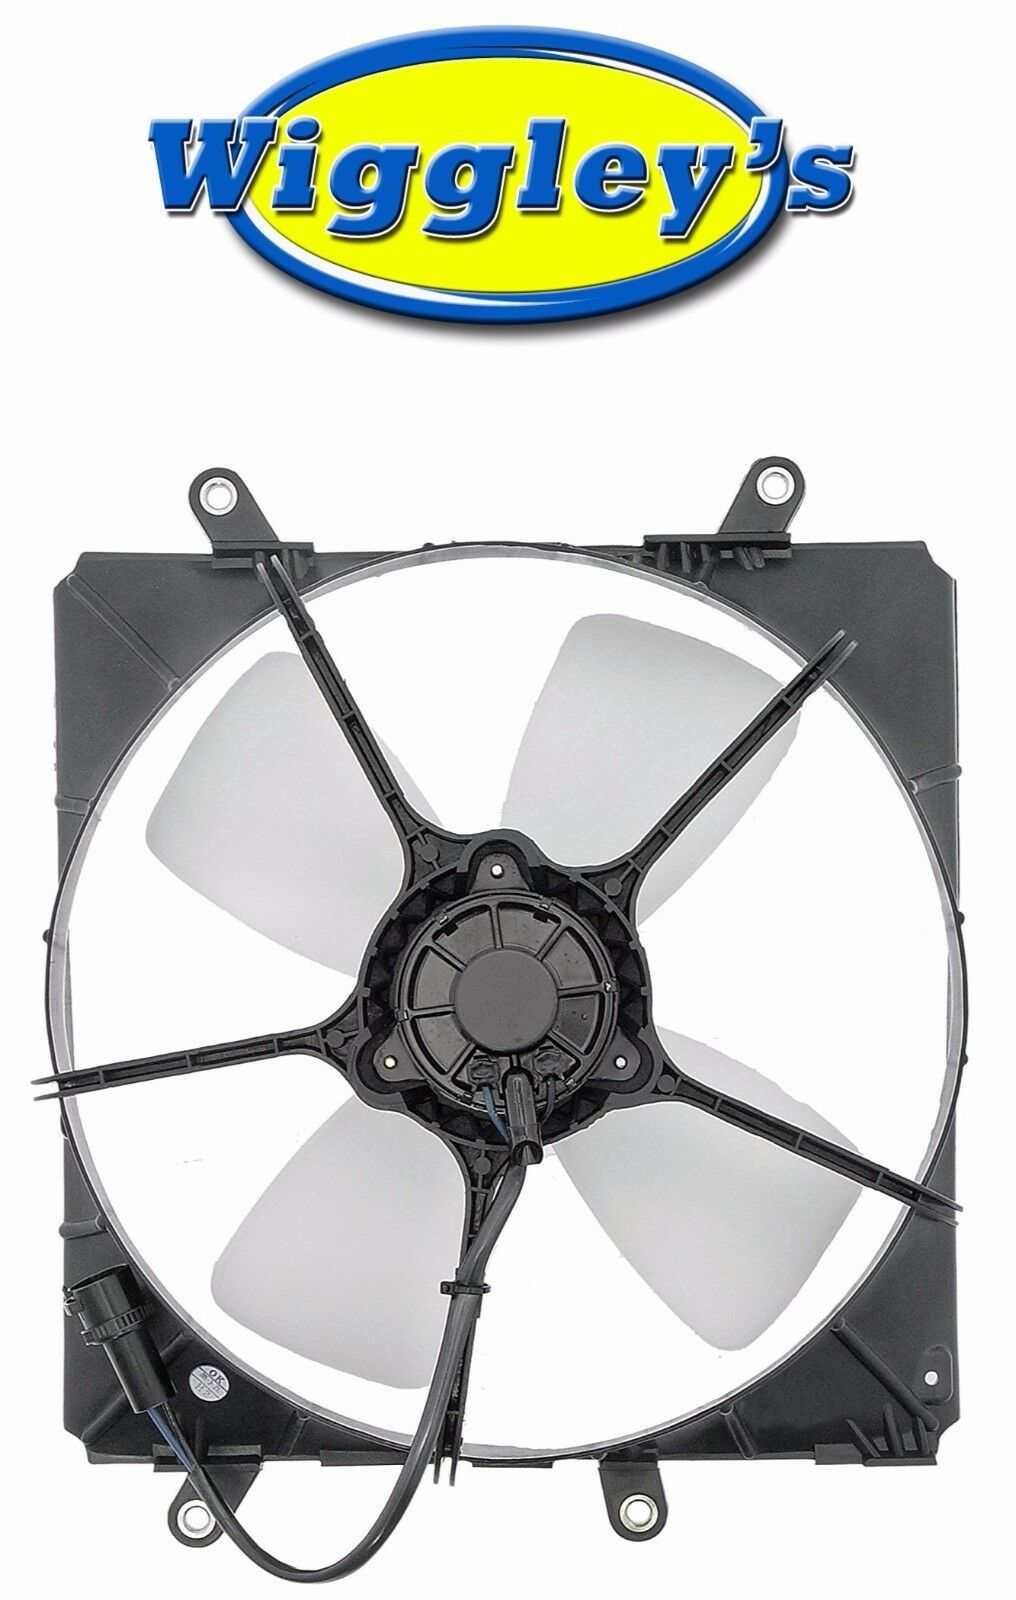 A/C CONDENSER FAN ASSEMBLY TO3113107 FITS 87 88 89 90 91 TOYOTA CAMRY 2.0L-L4